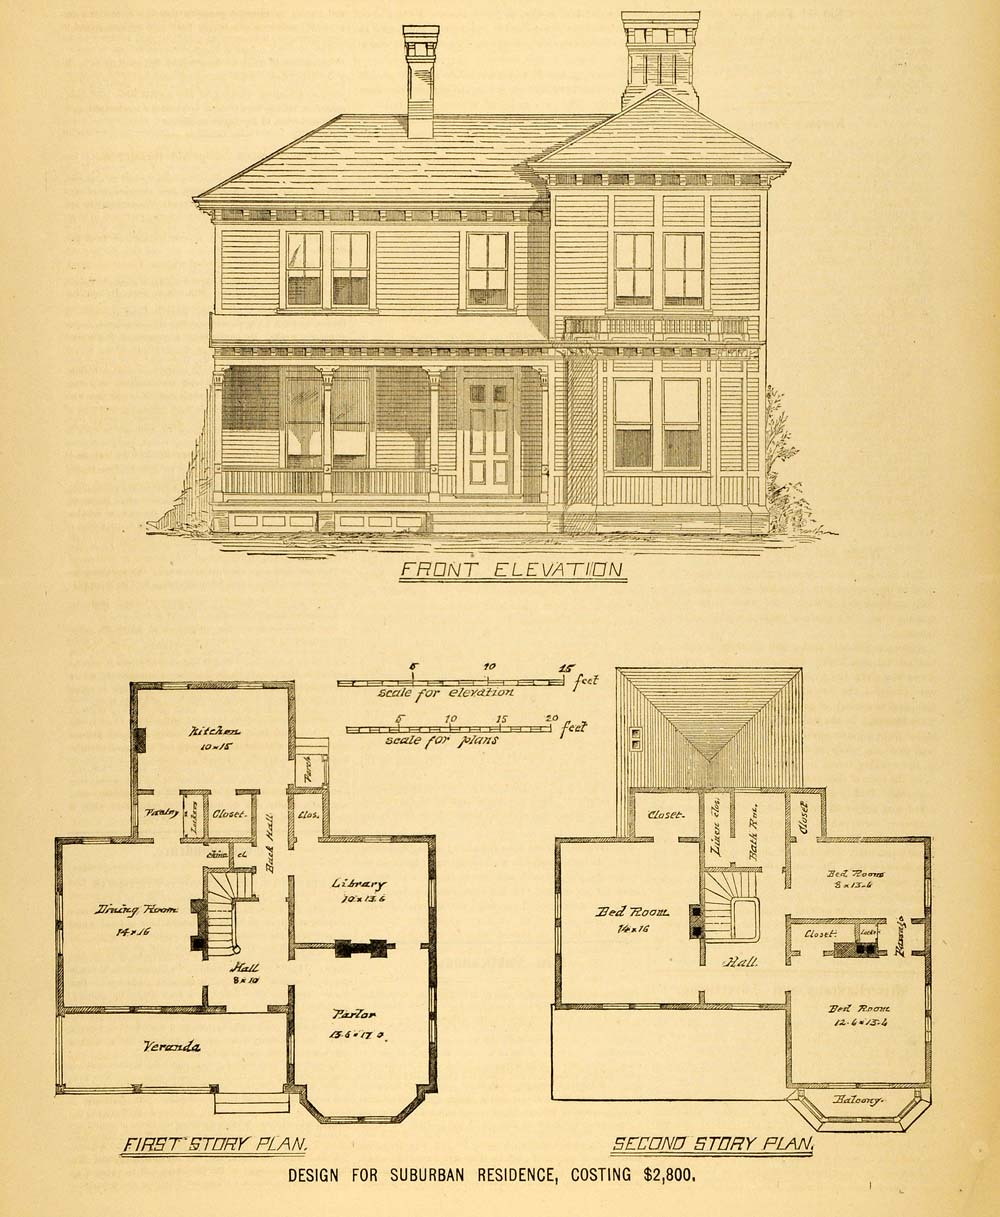 1878 print house architectural design floor plans for Architectural design floor plans